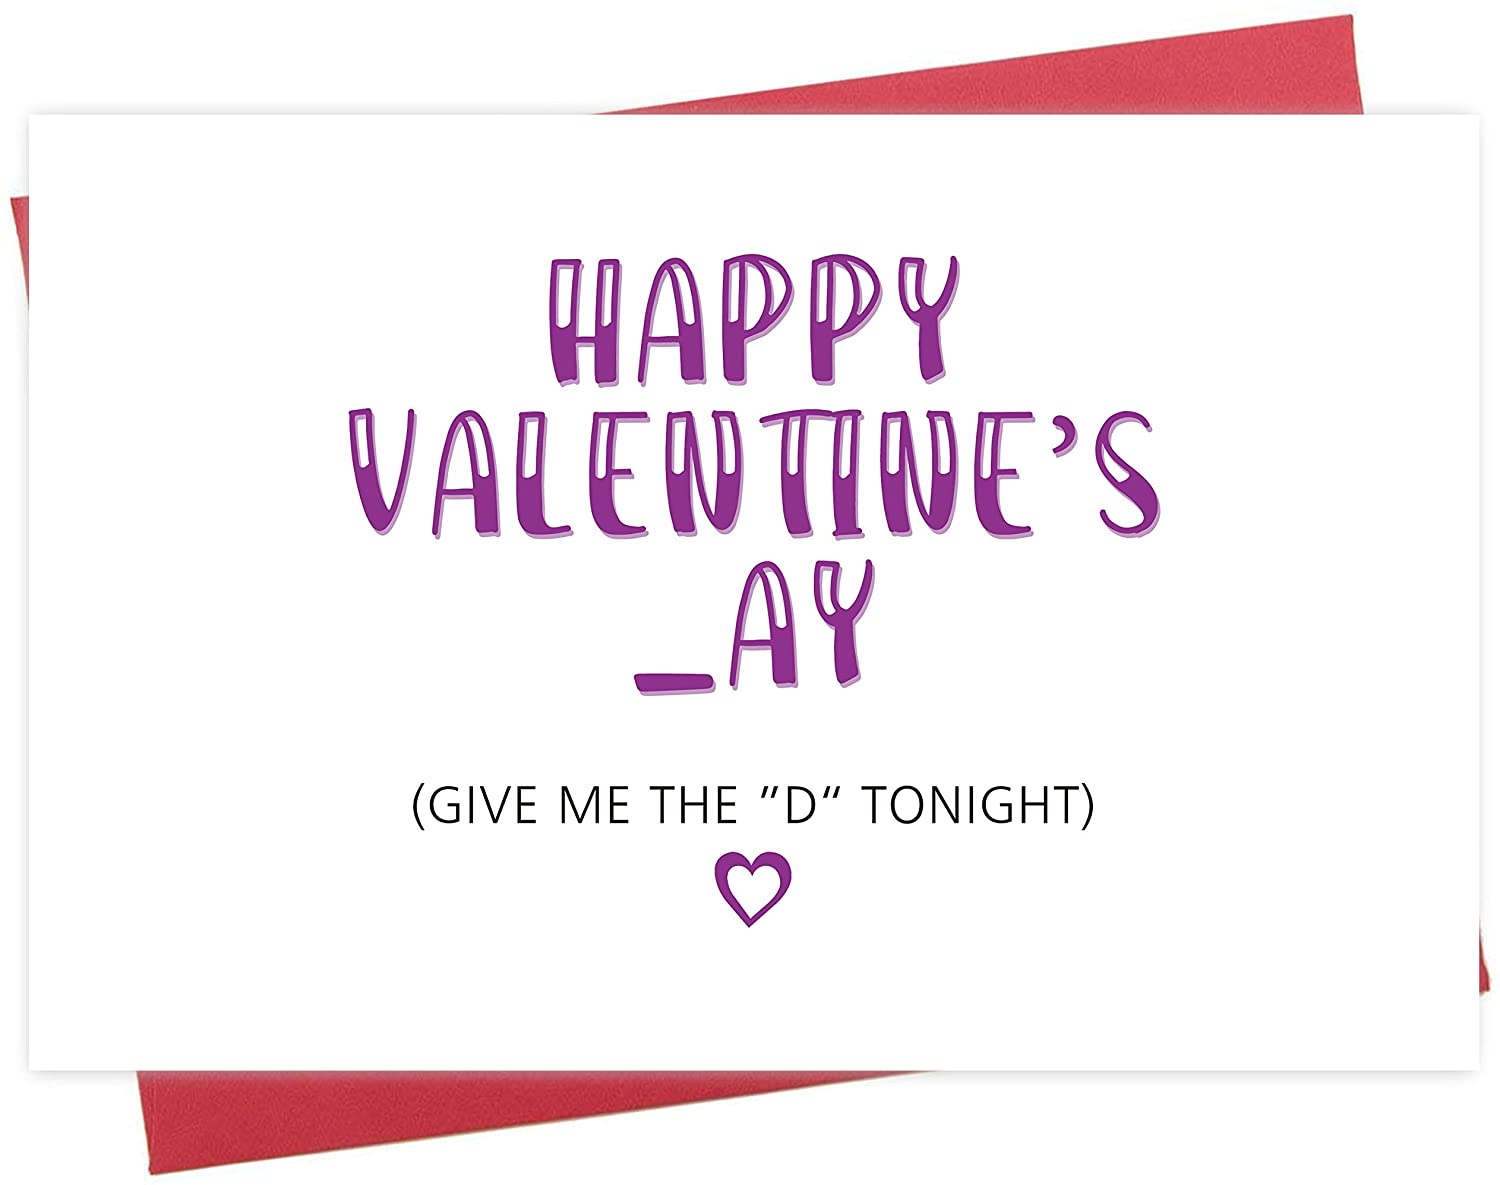 Funny Valentine's Day Card, Give Me The D Tonight, Cheeky Greeting Card for Him Boyfriend